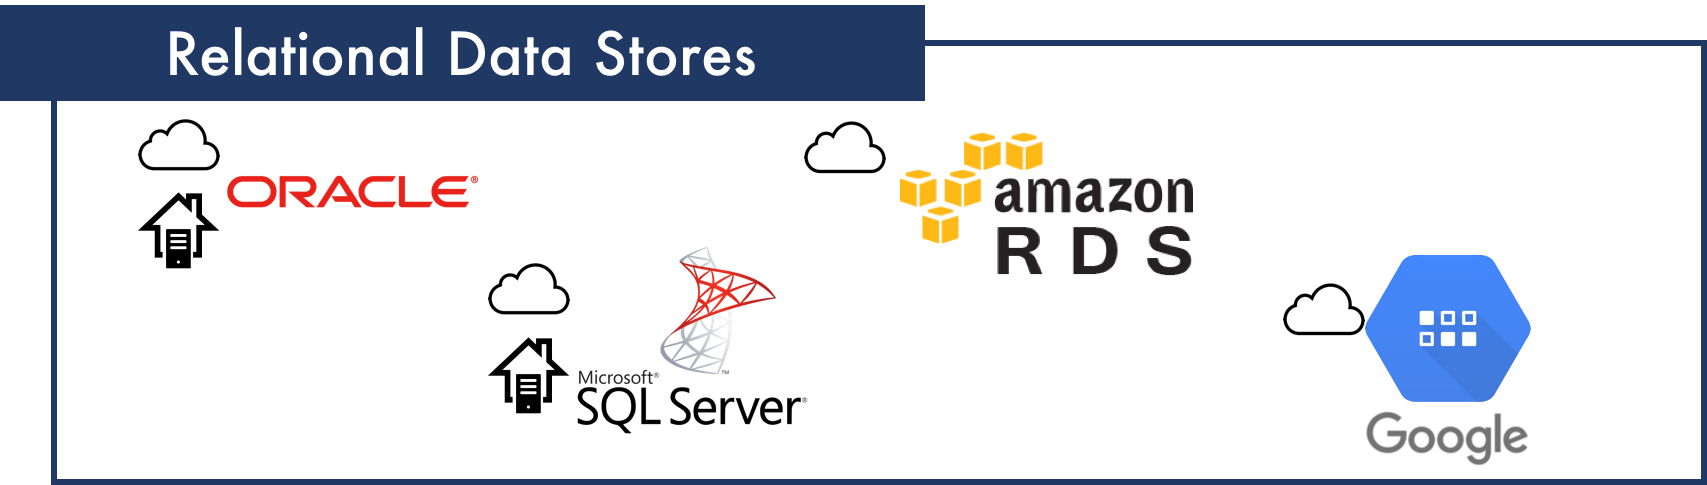 TIC Relational Data Stores